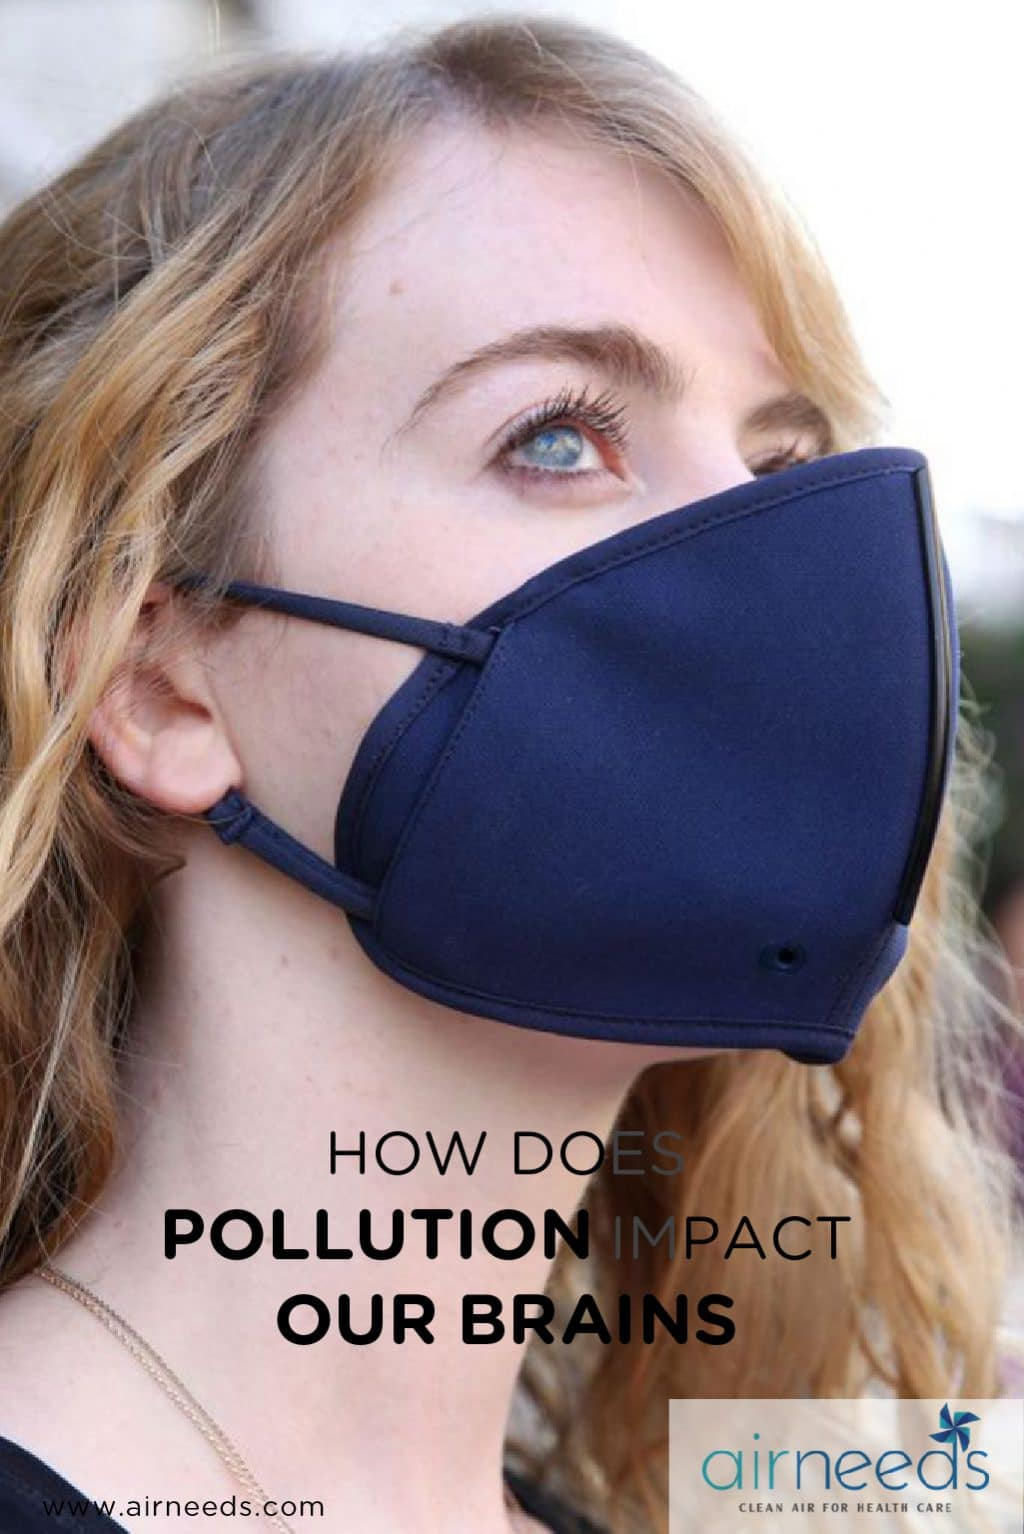 How Does Pollution Impact our Brains